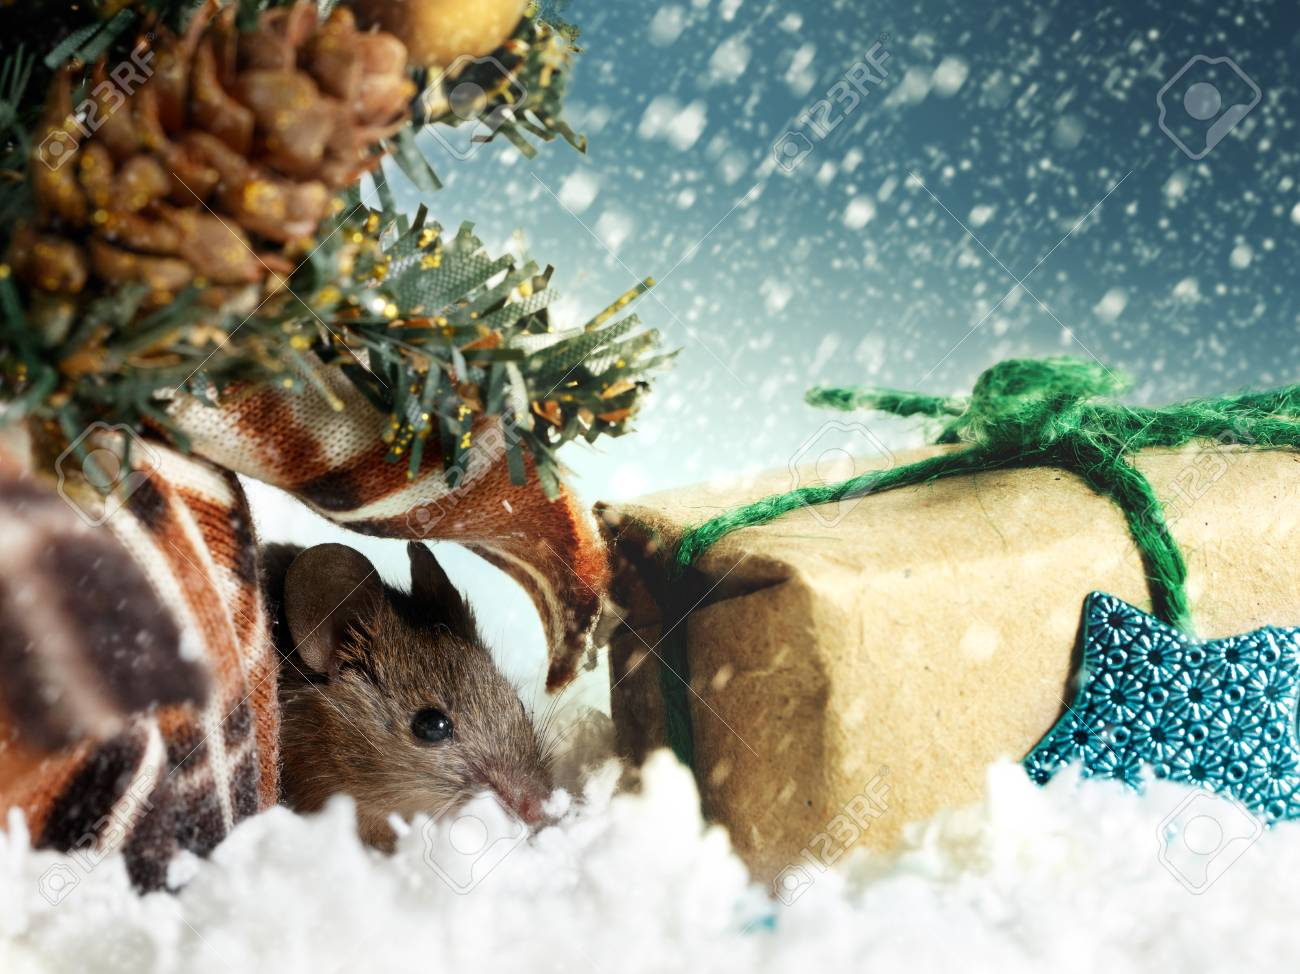 Christmas card: young mouse hides under Christmas tree near gift's box on background of snowing Standard-Bild - 92095658